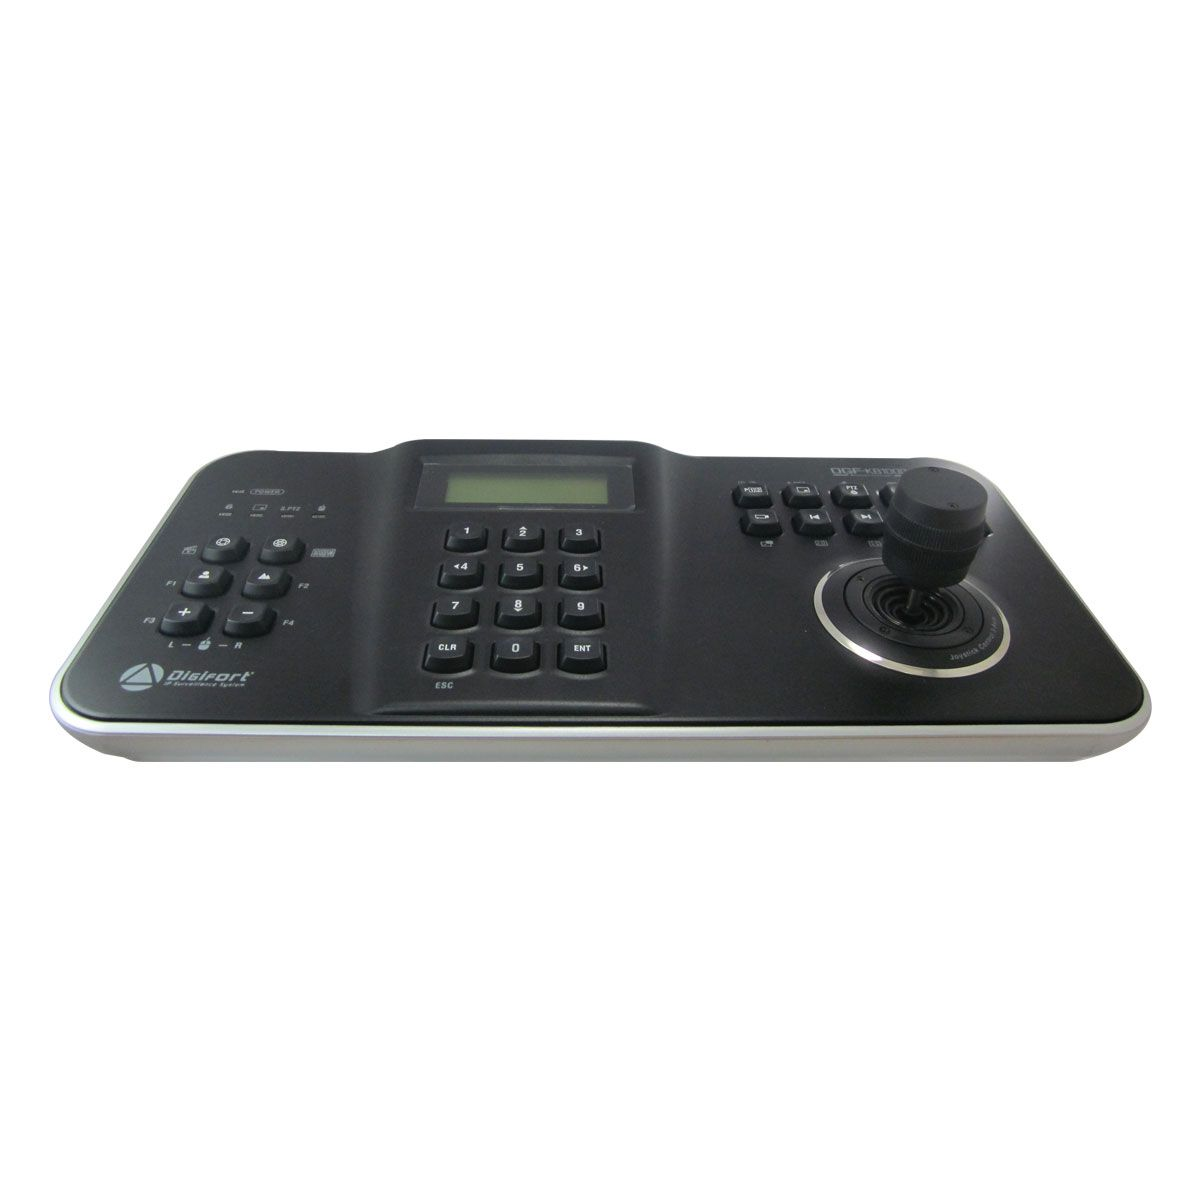 Joystick de video vigilancia Digifort DGF-KB1000